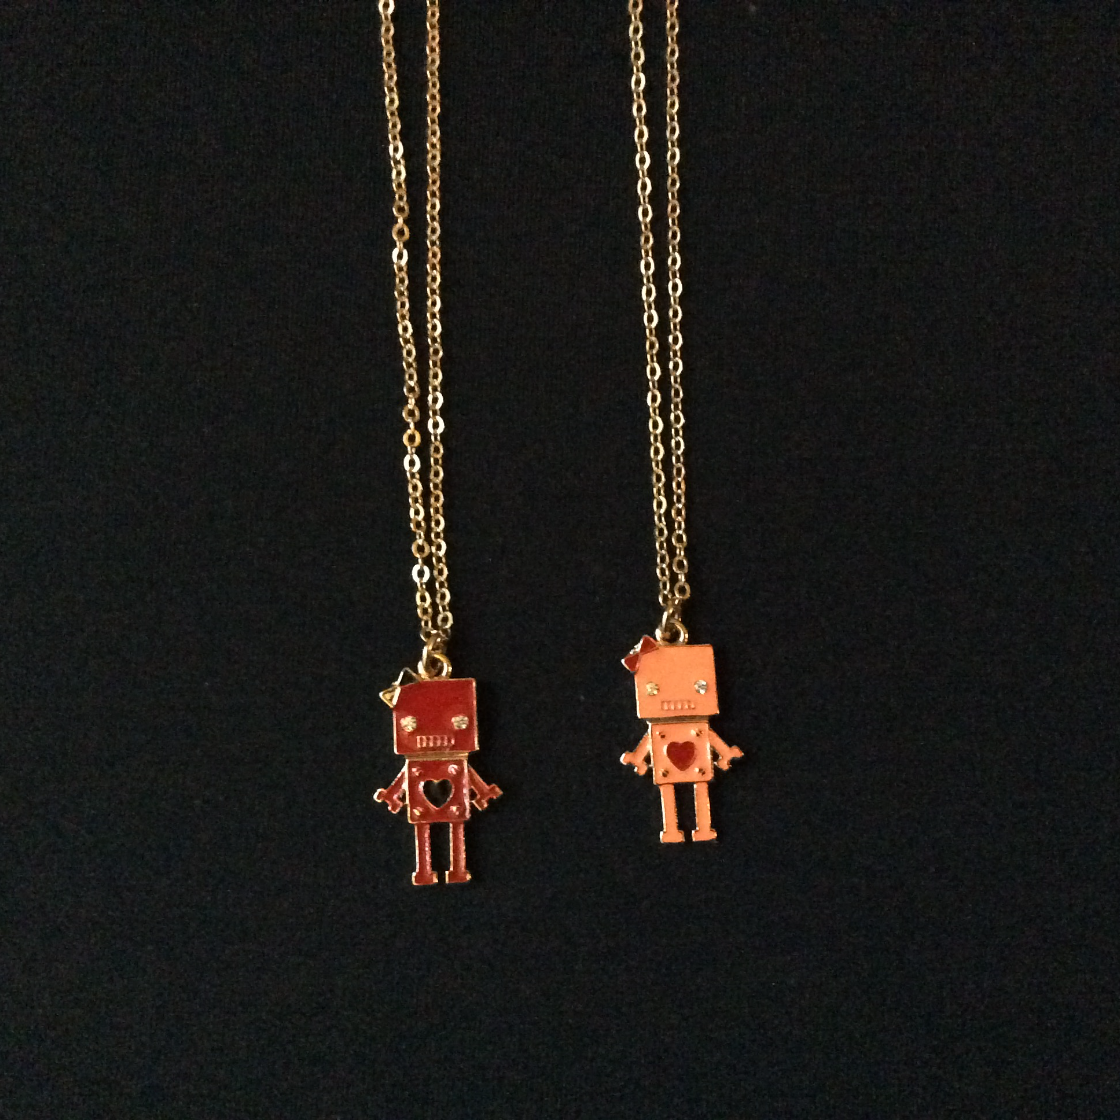 Colorful Robot Charm Necklaces